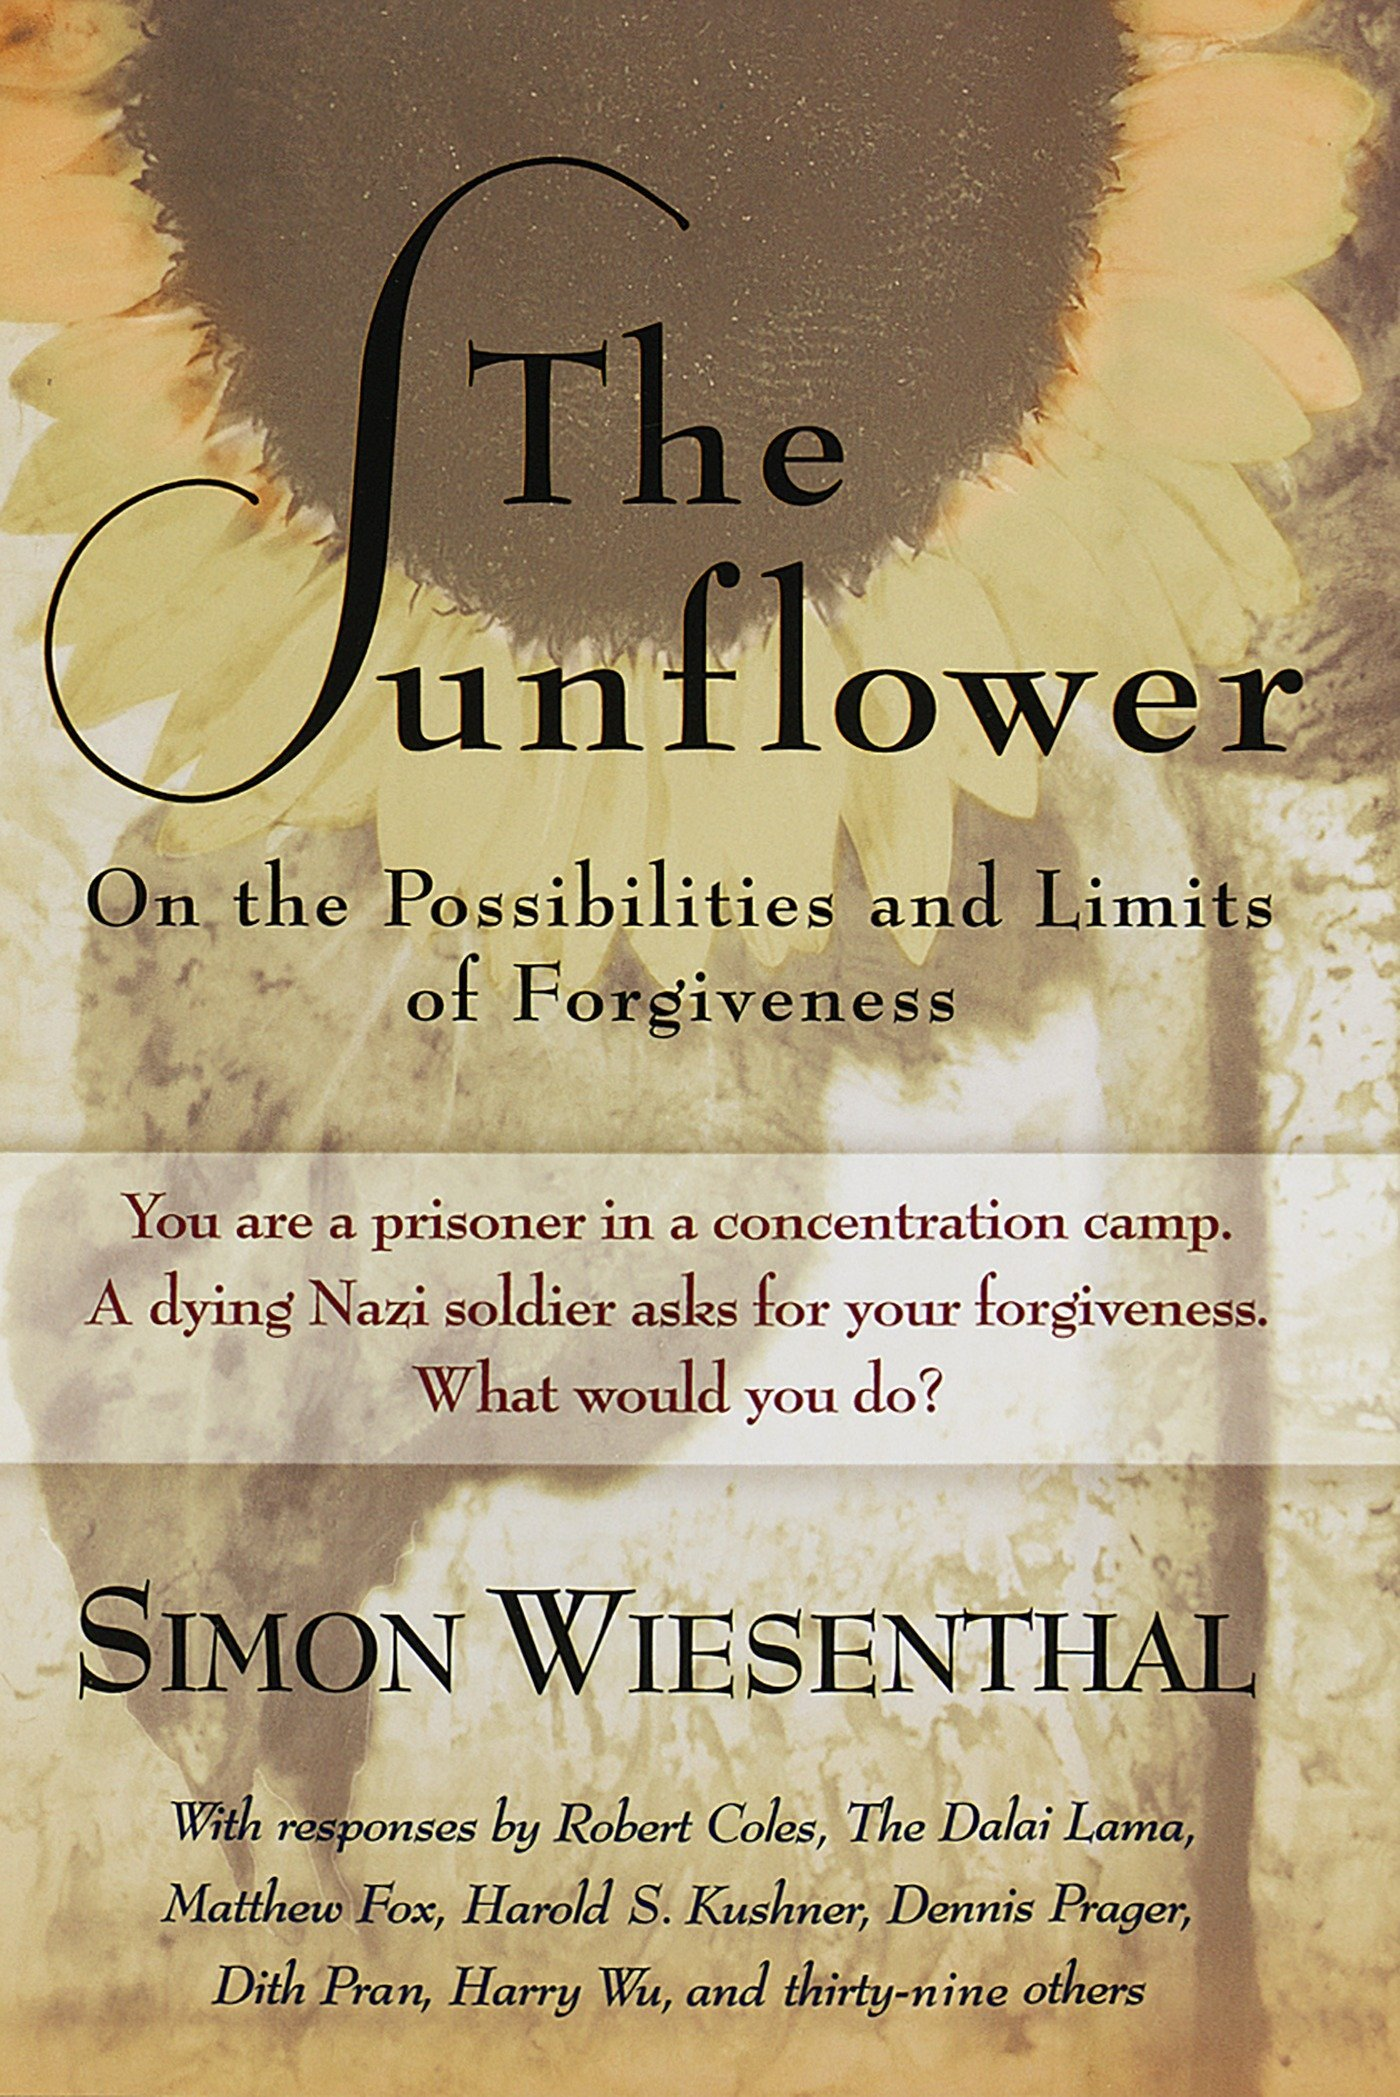 Proposal Essay Format The Sunflower On The Possibilities And Limits Of Forgiveness Newly  Expanded Paperback Edition Simon Wiesenthal  Amazoncom  Books Learn English Essay Writing also Essays Written By High School Students The Sunflower On The Possibilities And Limits Of Forgiveness Newly  How To Write An Essay High School